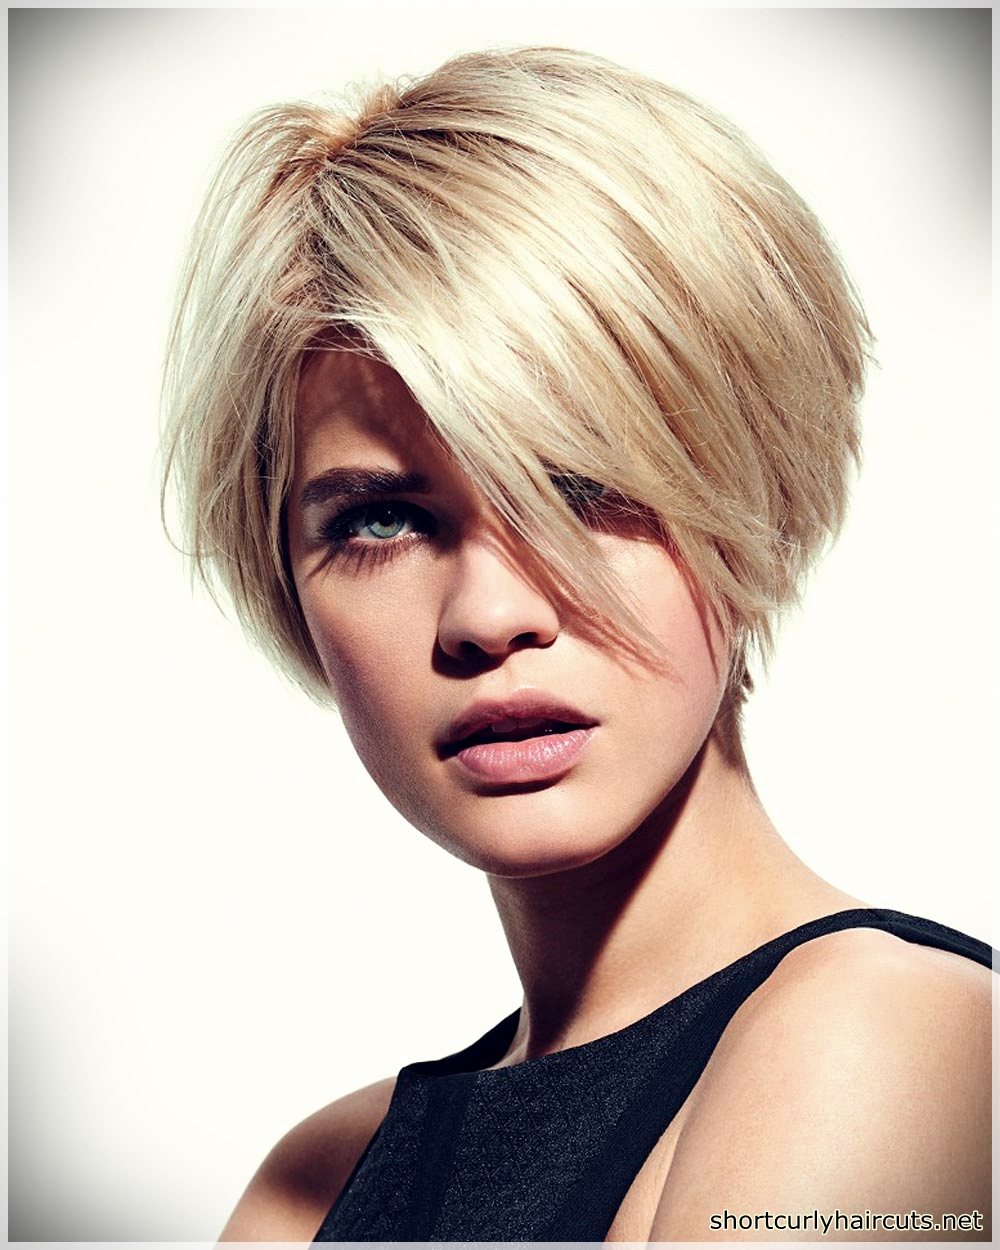 Edgy Short Hairstyles and Cuts - edgy short hairstyles and cuts 9